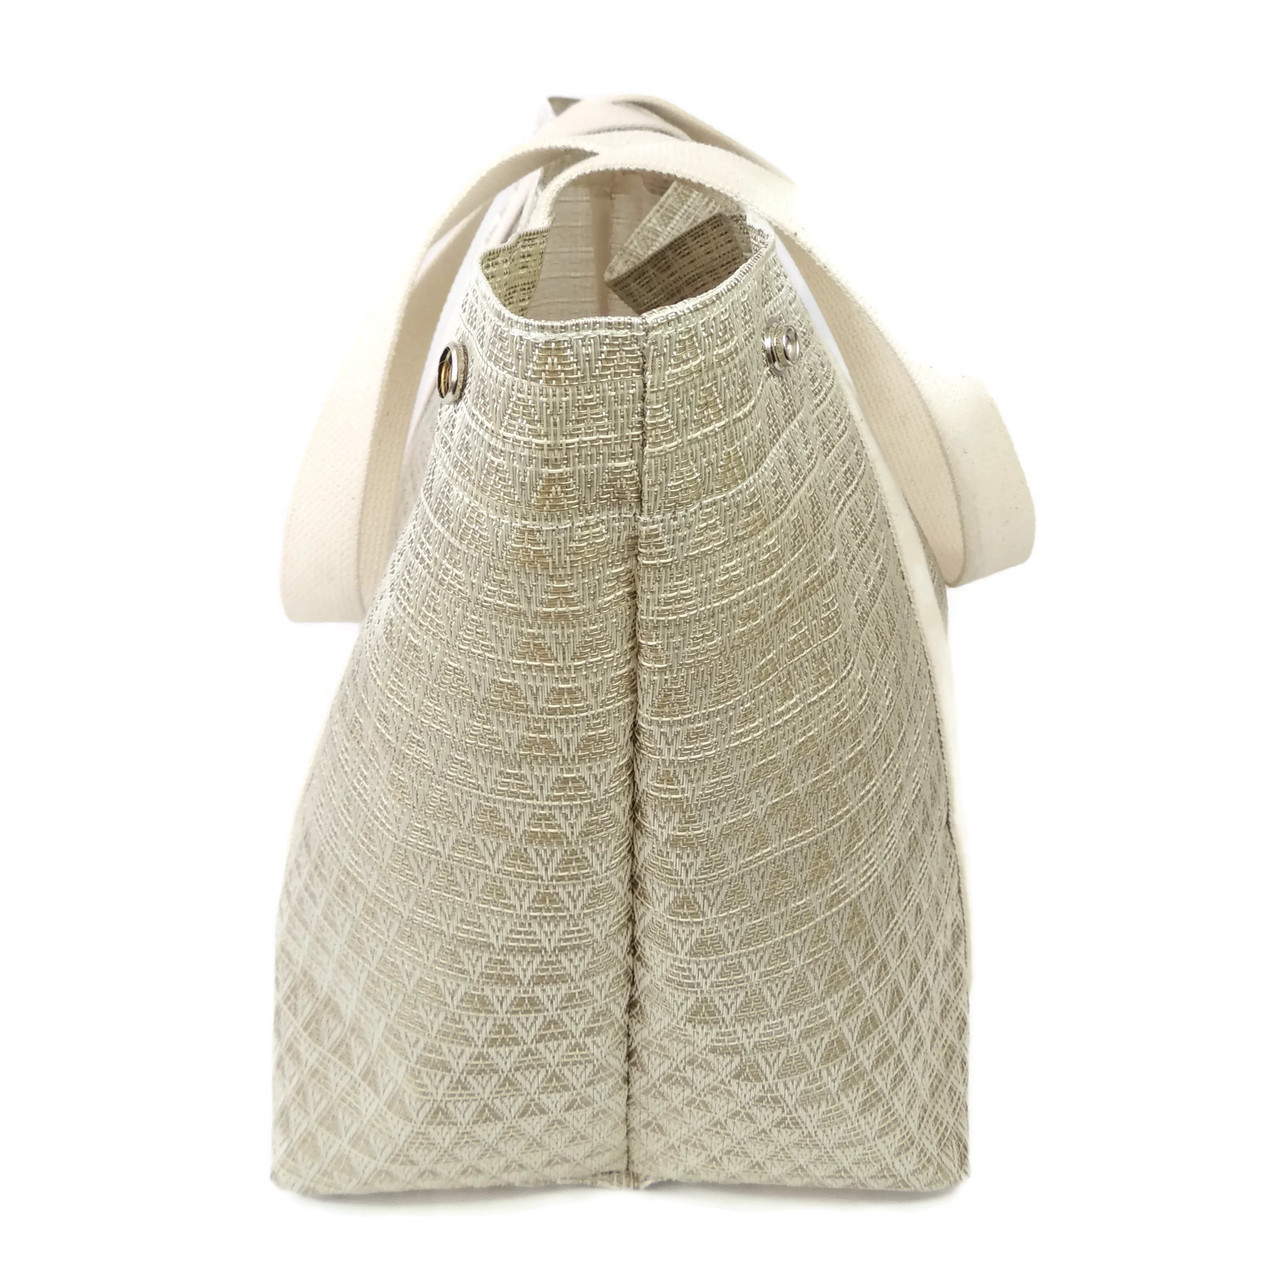 Beach Tote in Seashell